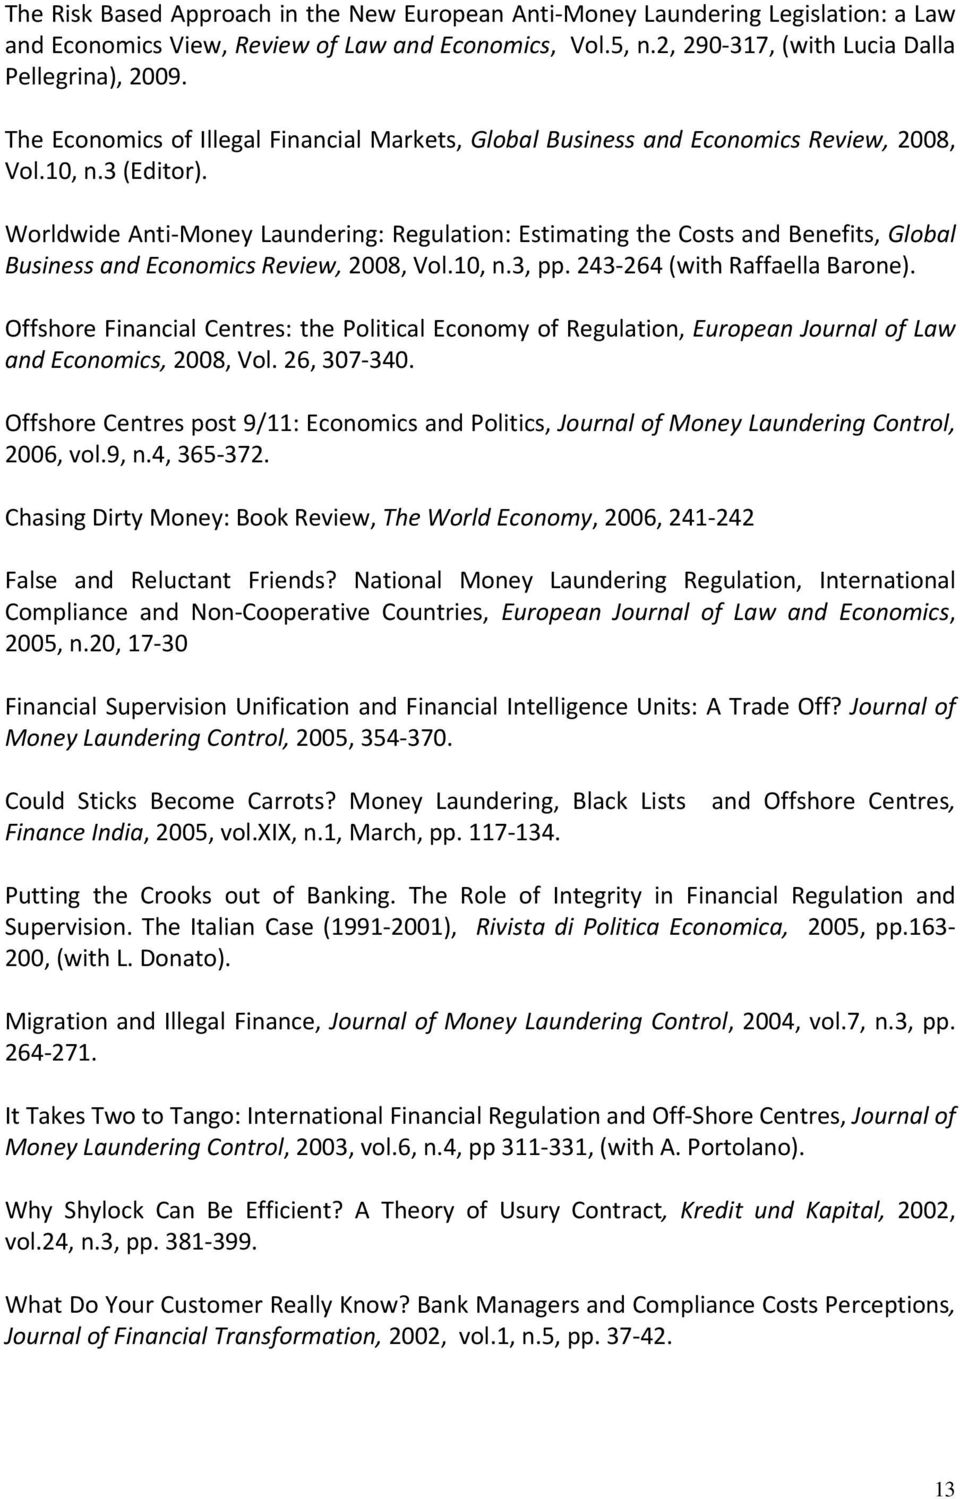 Worldwide Anti Money Laundering: Regulation: Estimating the Costs and Benefits, Global Business and Economics Review, 2008, Vol.10, n.3, pp. 243 264 (with Raffaella Barone).